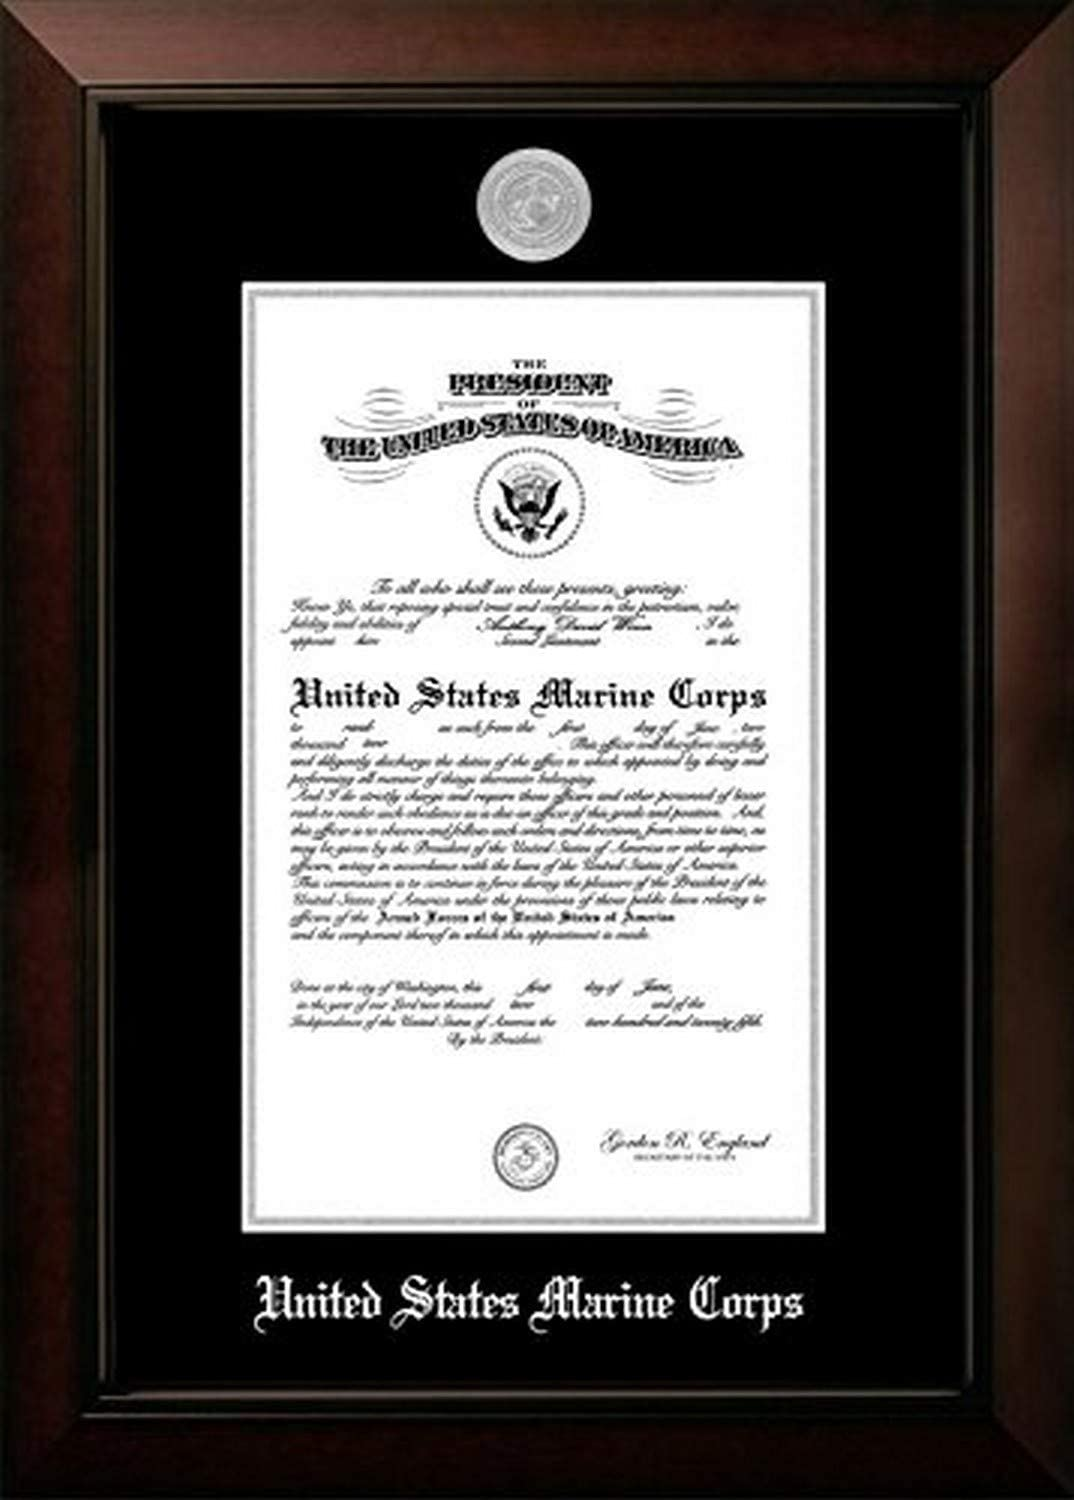 8 x 10 Campus Images MACLG0028x10 Marine Certificate Legacy Frame with Silver Medallion